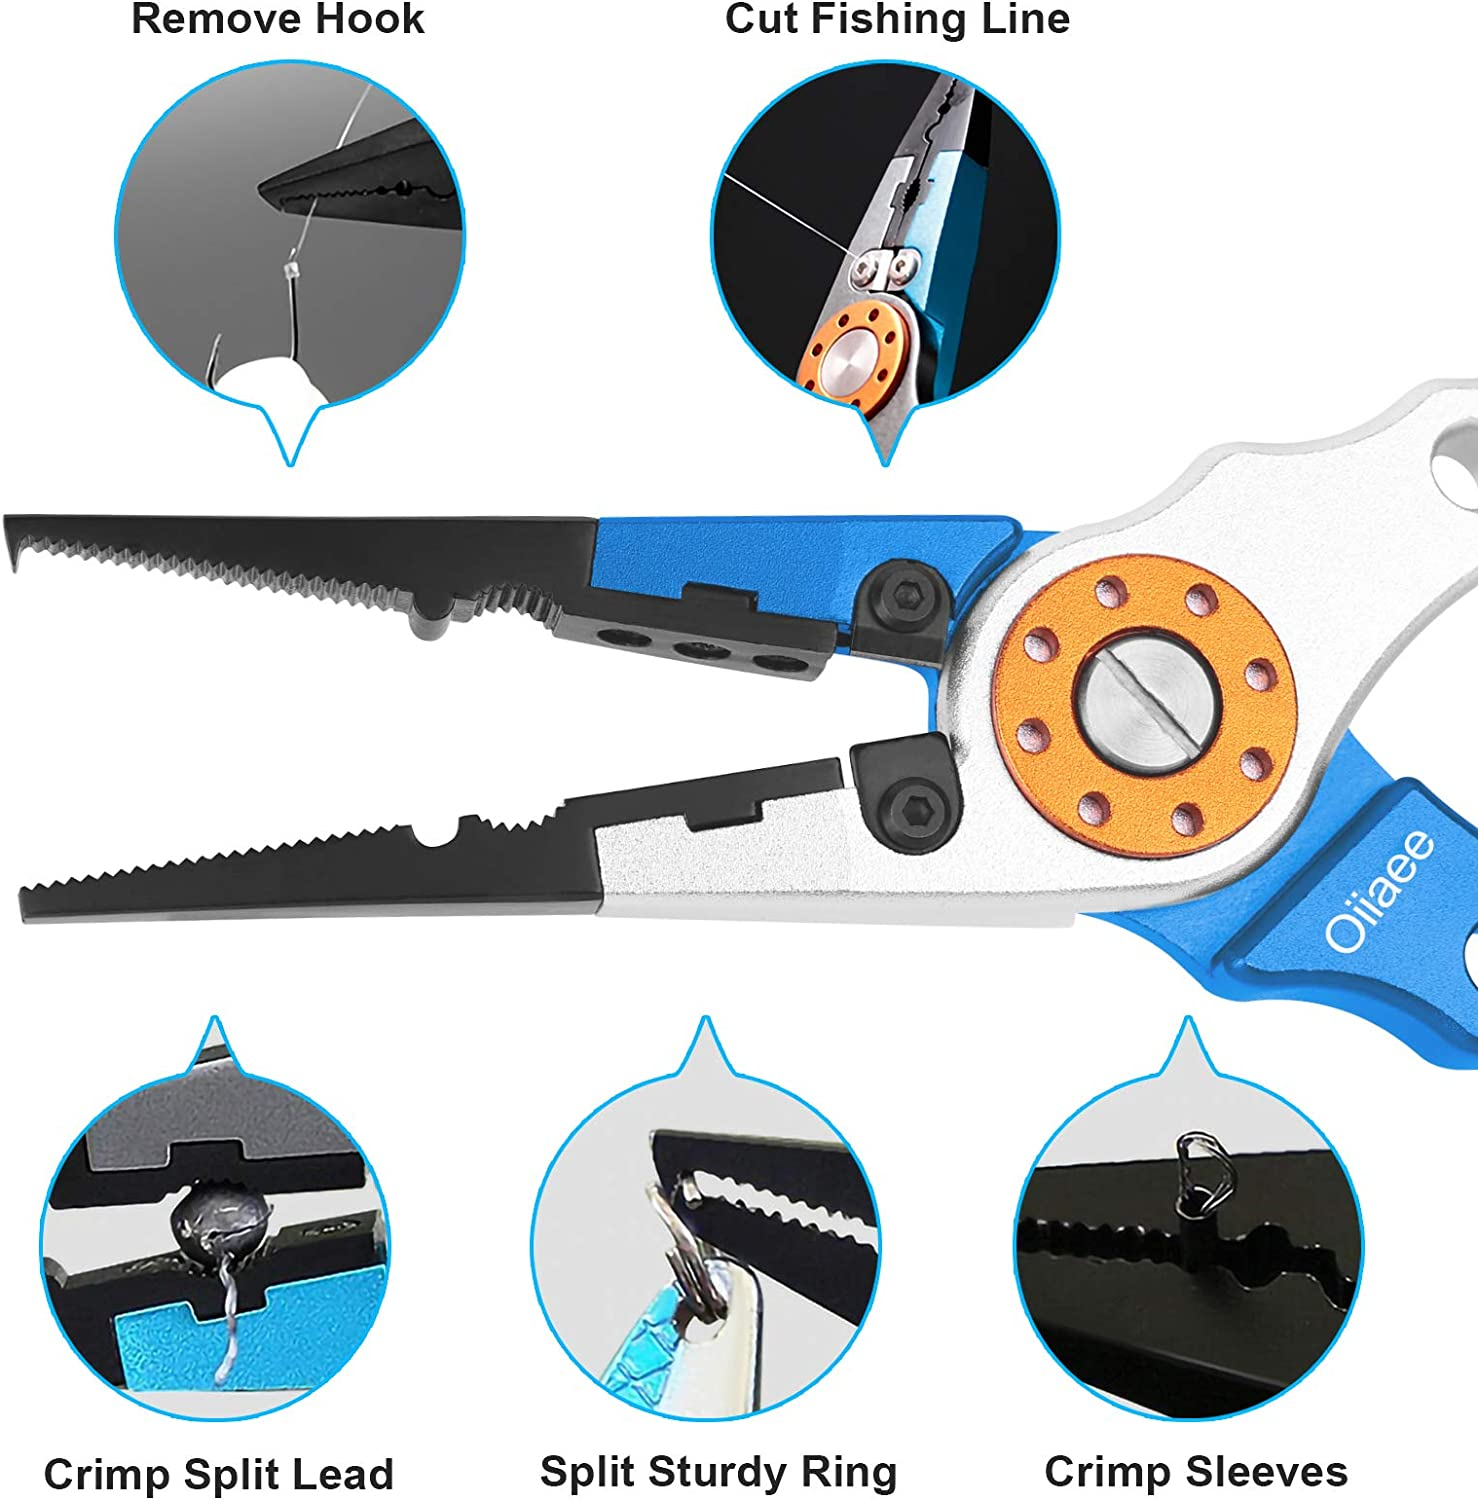 Oiiaee Fishing Pliers, Stainless Steel Fishing Lip Gripper Muti-Function Fishing Tools Set Hook Remover Split Ring, Fly Fishing kit, Ice Fishing Gear,Fishing Gifts for Men(Black) : Sports & Outdoors